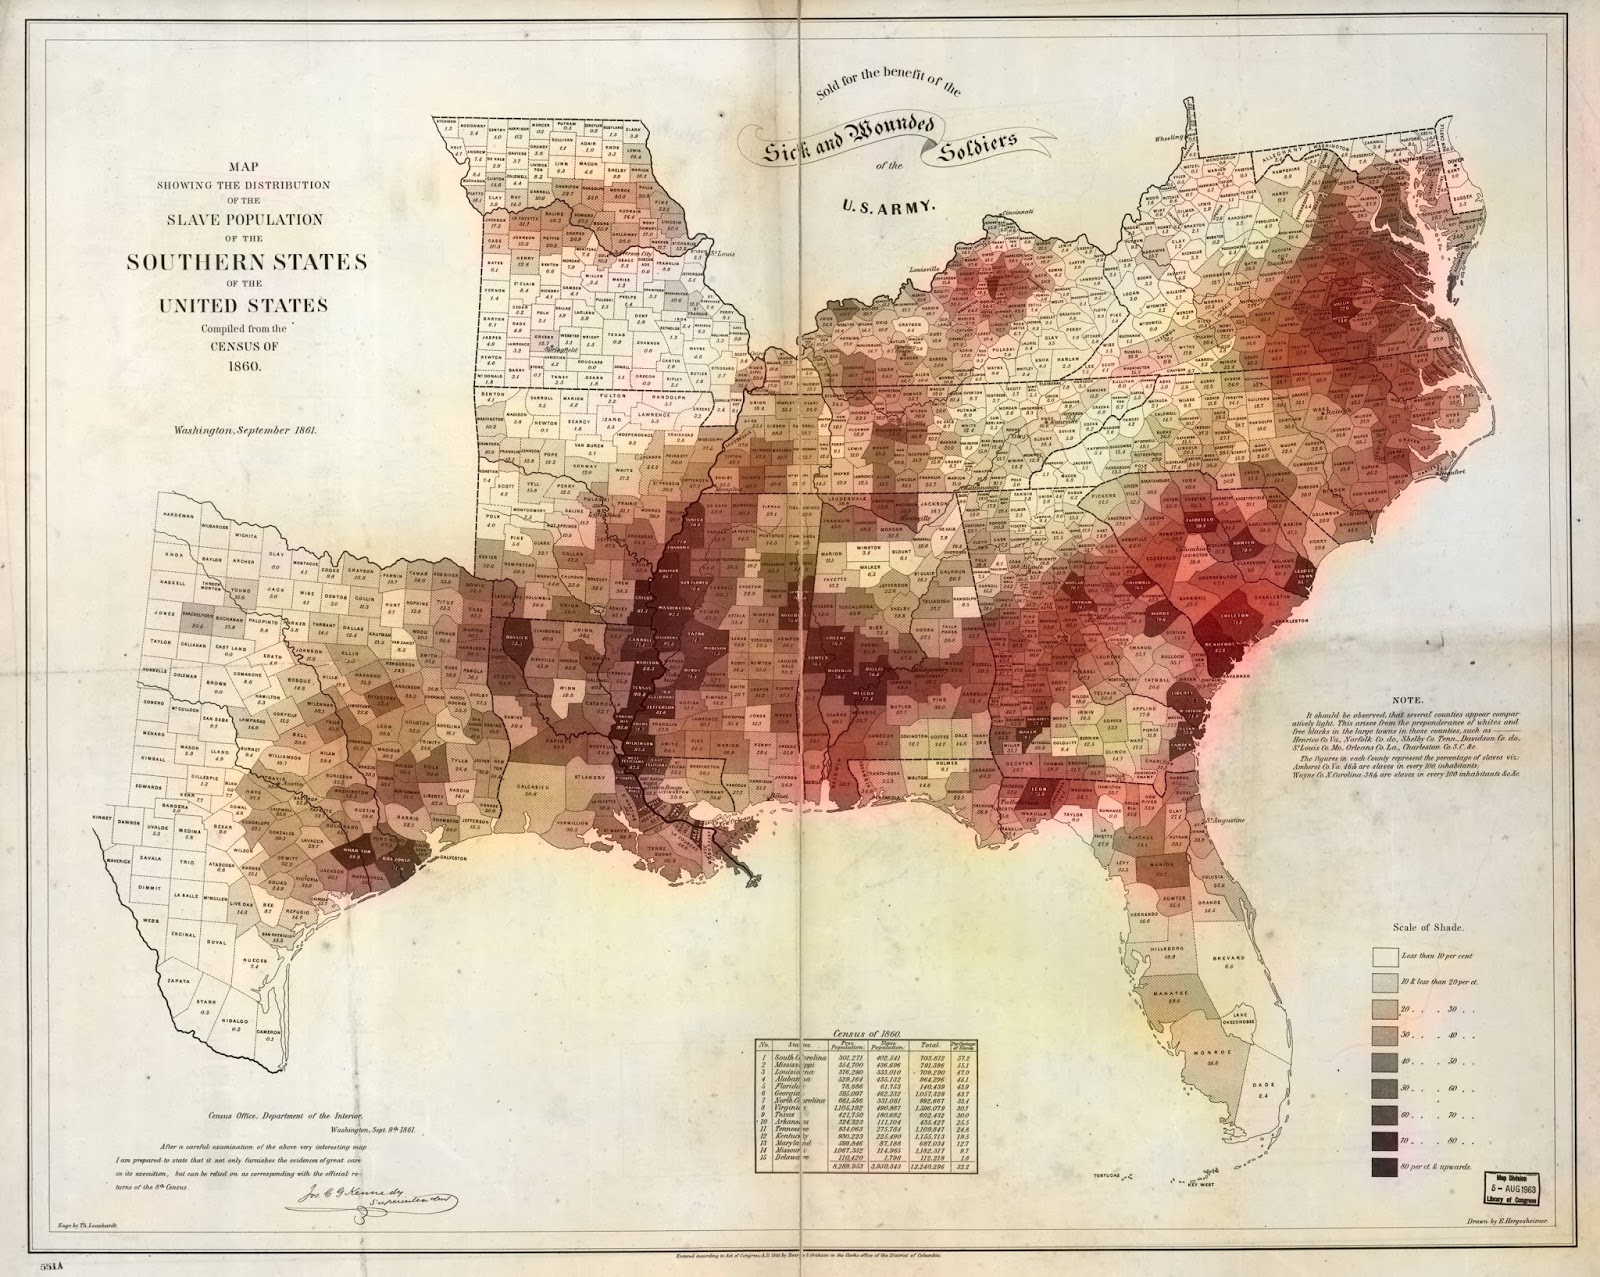 Map showing the Slave Population of Southern States (1861)